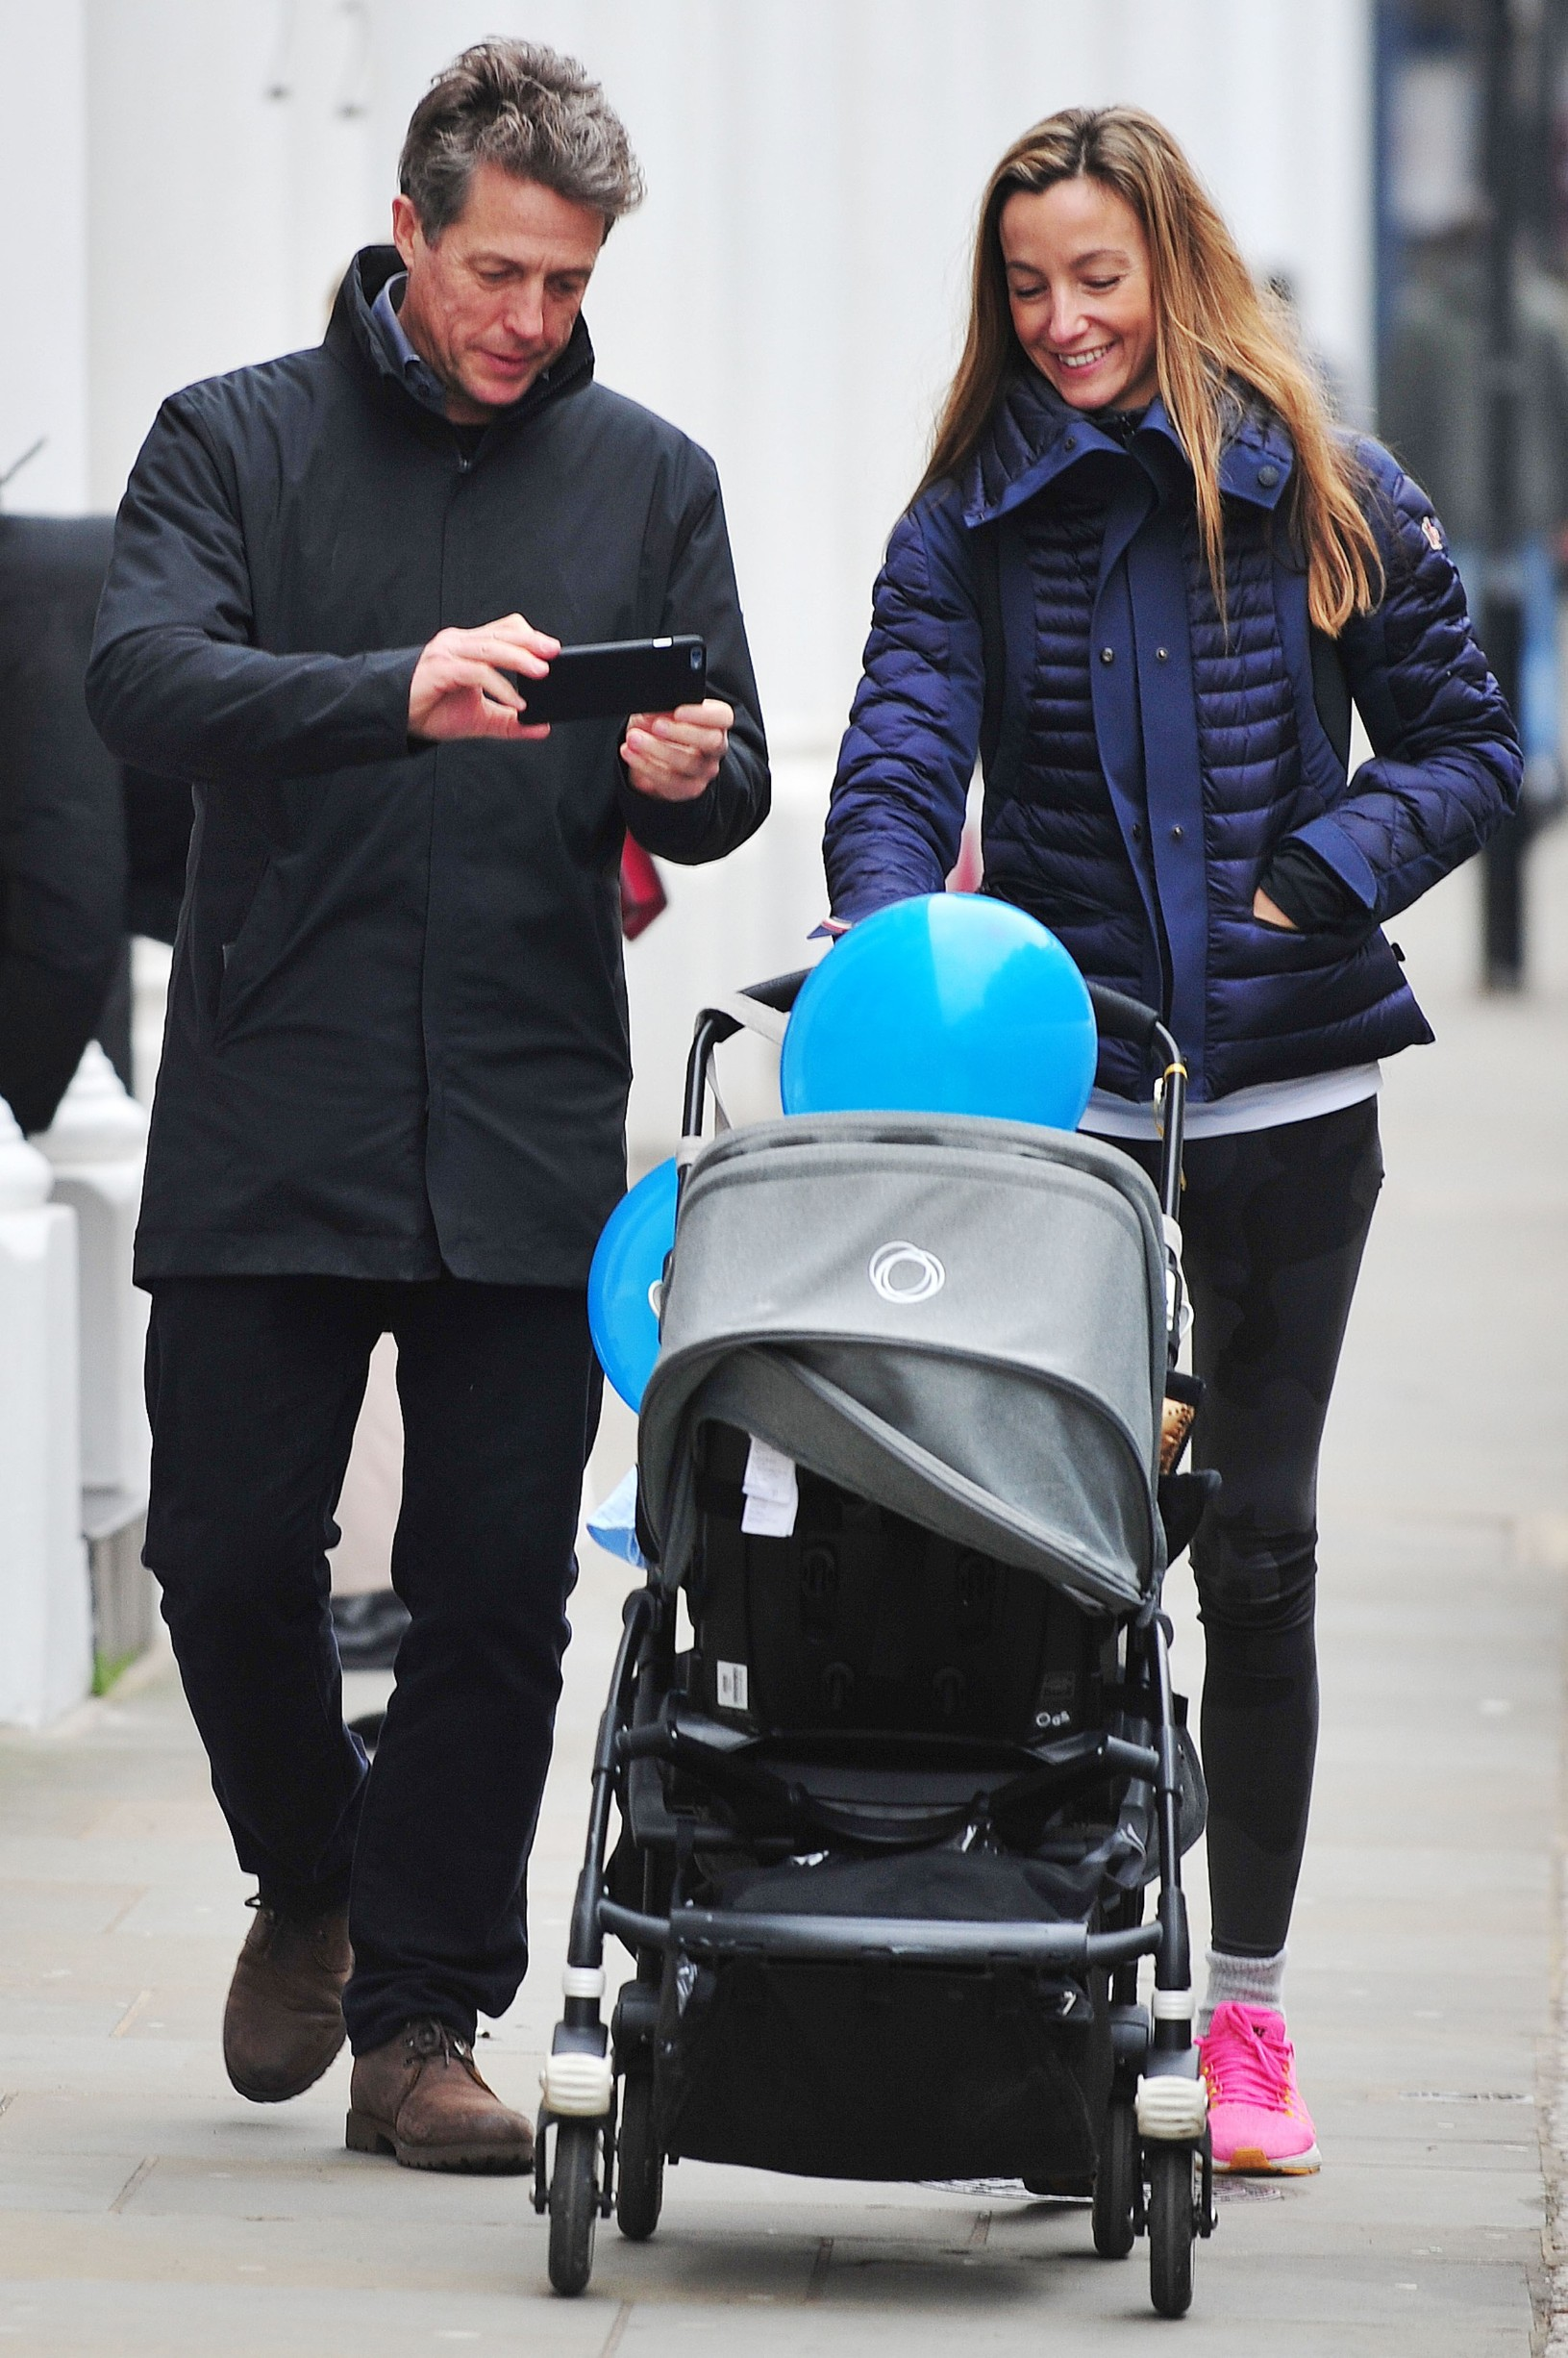 LONDON  - UK  *** PREMIUM EXCLUSIVE - MUST CALL FOR PRICING ***  **Pictures Taken 2nd DEC 2016*  British Actor Hugh Grant and Anna Eberstein are all smiles as they are pictured taking a stroll together with thier baby in Chelsea, West London.,Image: 307593396, License: Rights-managed, Restrictions: *** PREMIUM EXCLUSIVE - MUST CALL FOR PRICING *** -  PLEASE CREDIT AS PER BYLINE *UK CLIENTS - PLEASE PIXELATE CHILDS FACE BEFORE PUBLICATION***UK CLIENTS MUST CALL PRIOR TO TV OR ONLINE USAGE PLEASE CALL 0208 344 2007, Model Release: no, Credit line: DE74 / Backgrid UK / Profimedia